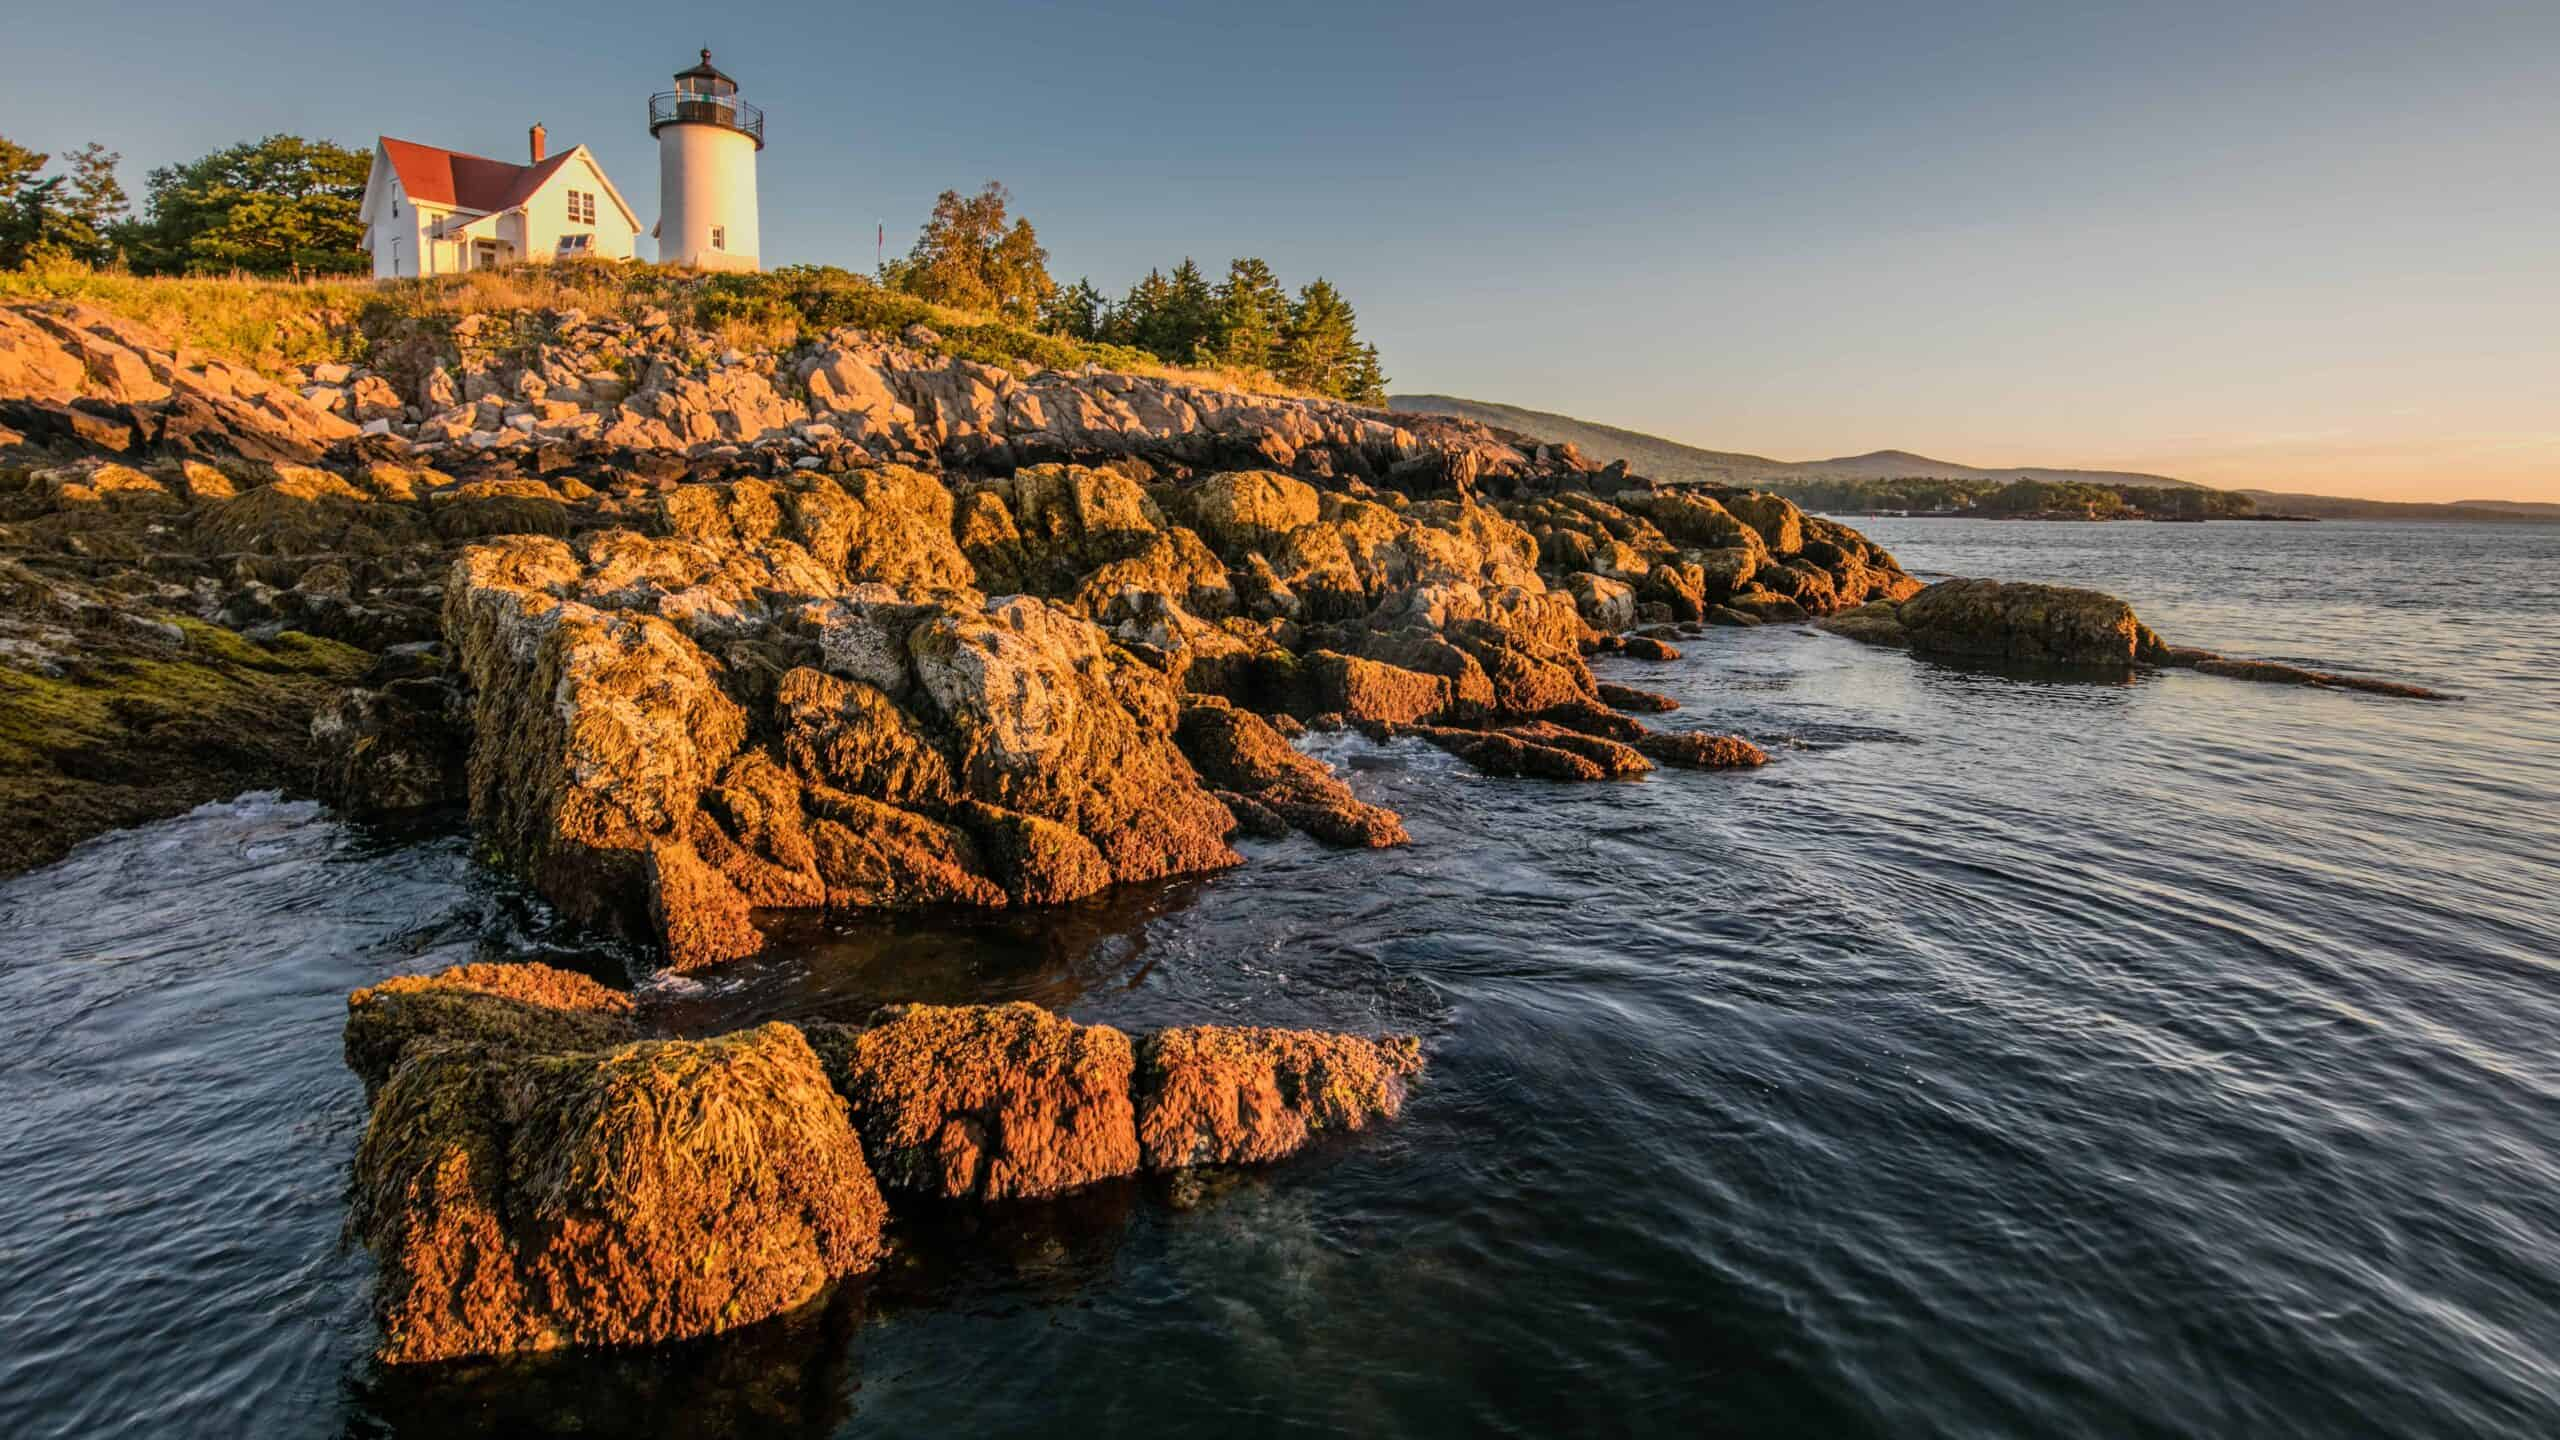 15 Best Places To Visit In New England The Top Vacation Spots New England With Love